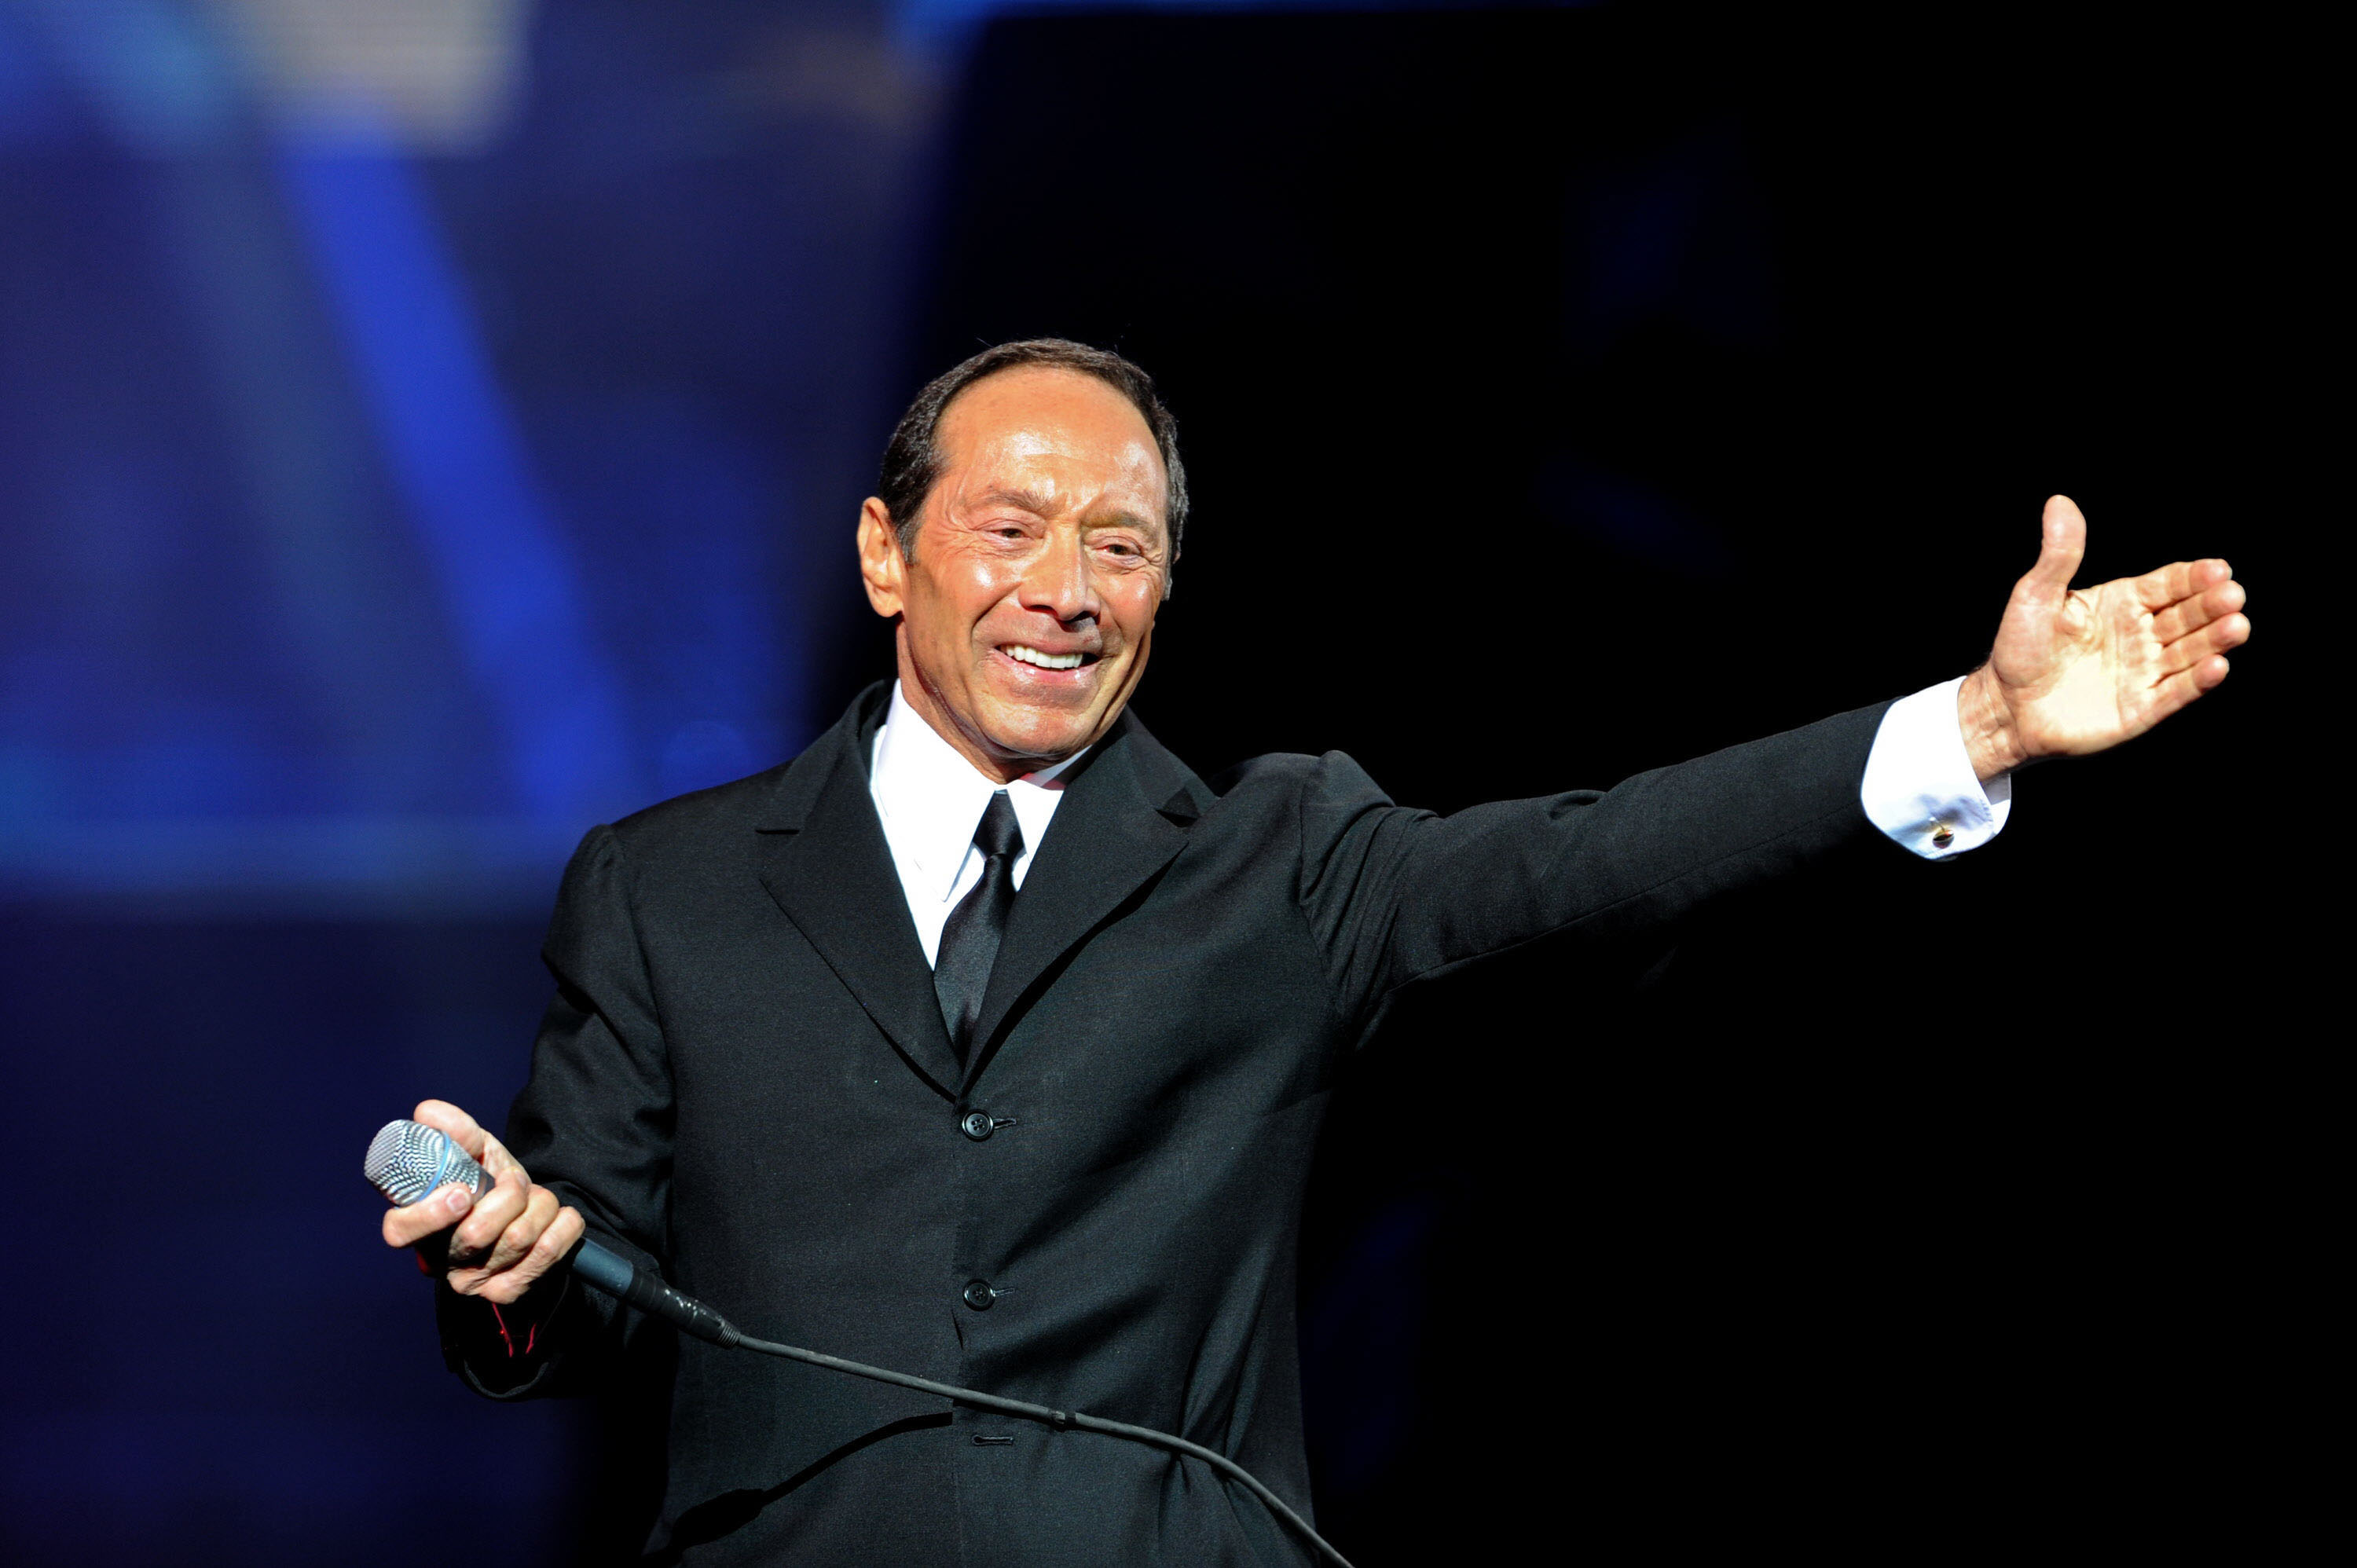 Paul Anka 'resucita' al Rey del Pop